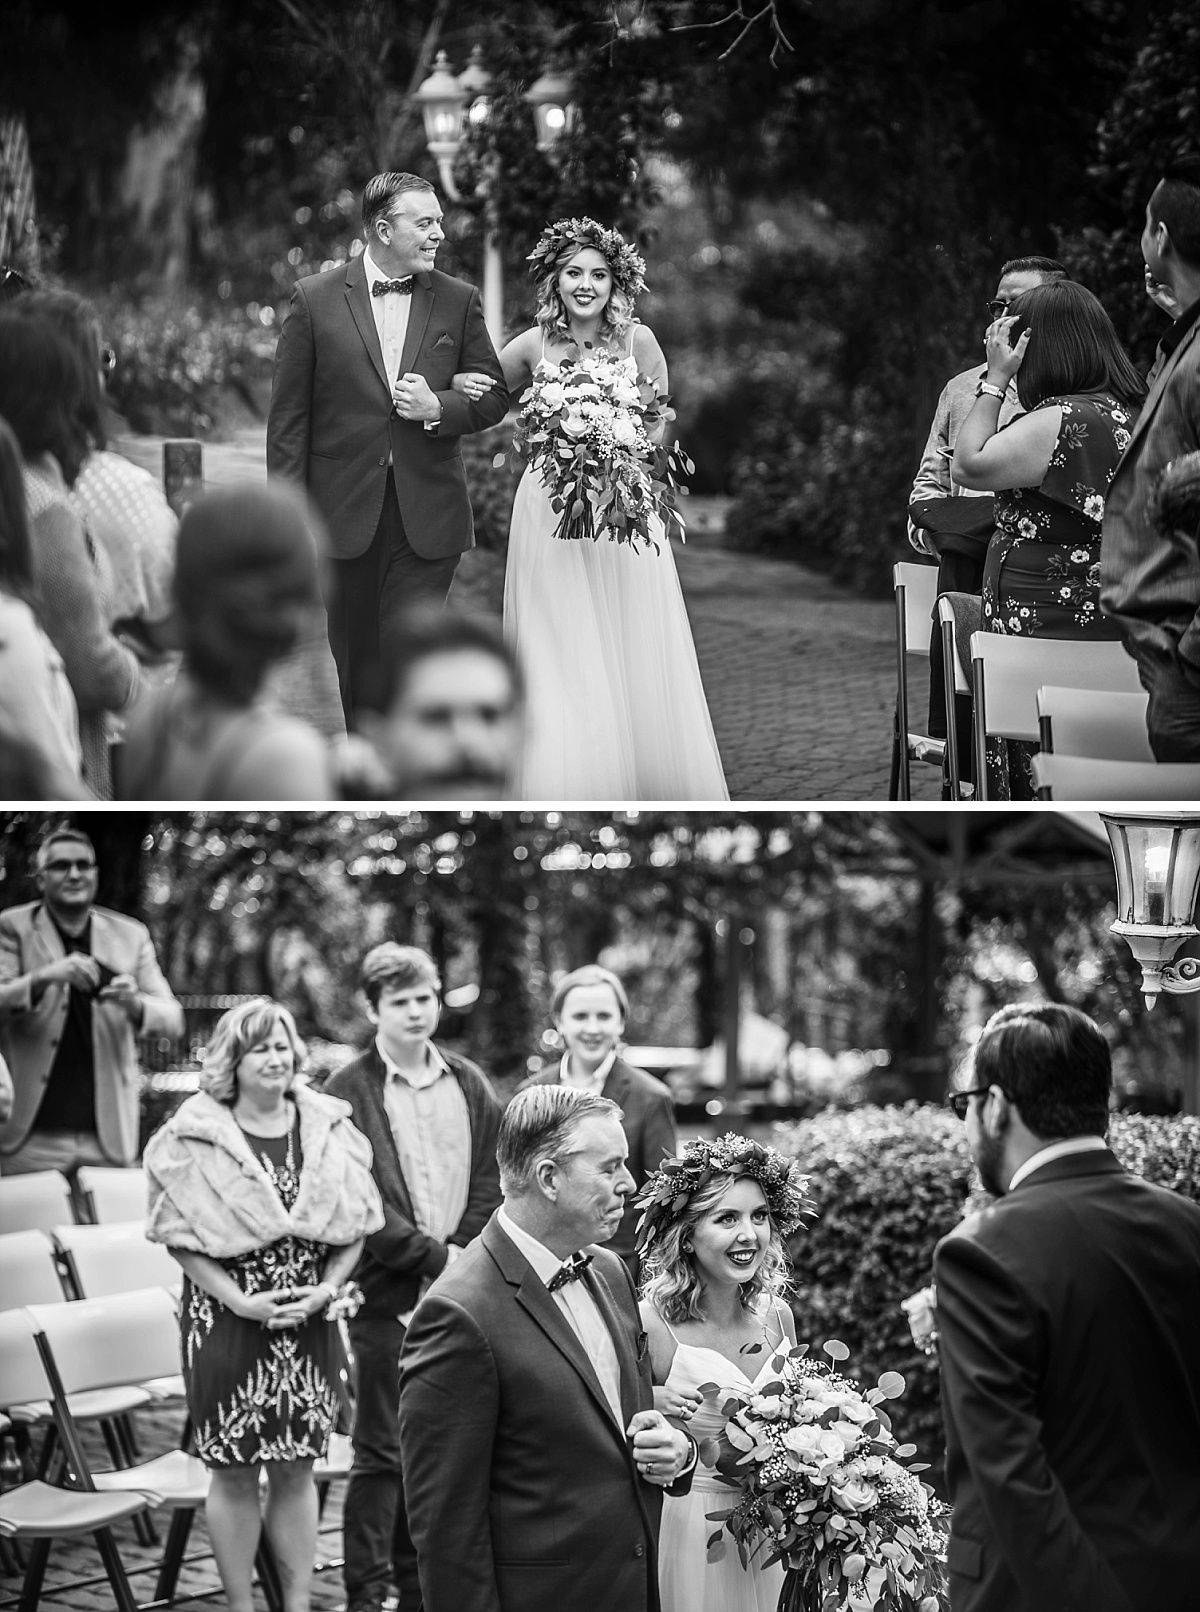 sequoia national park three rivers white horse inn wedding ceremony